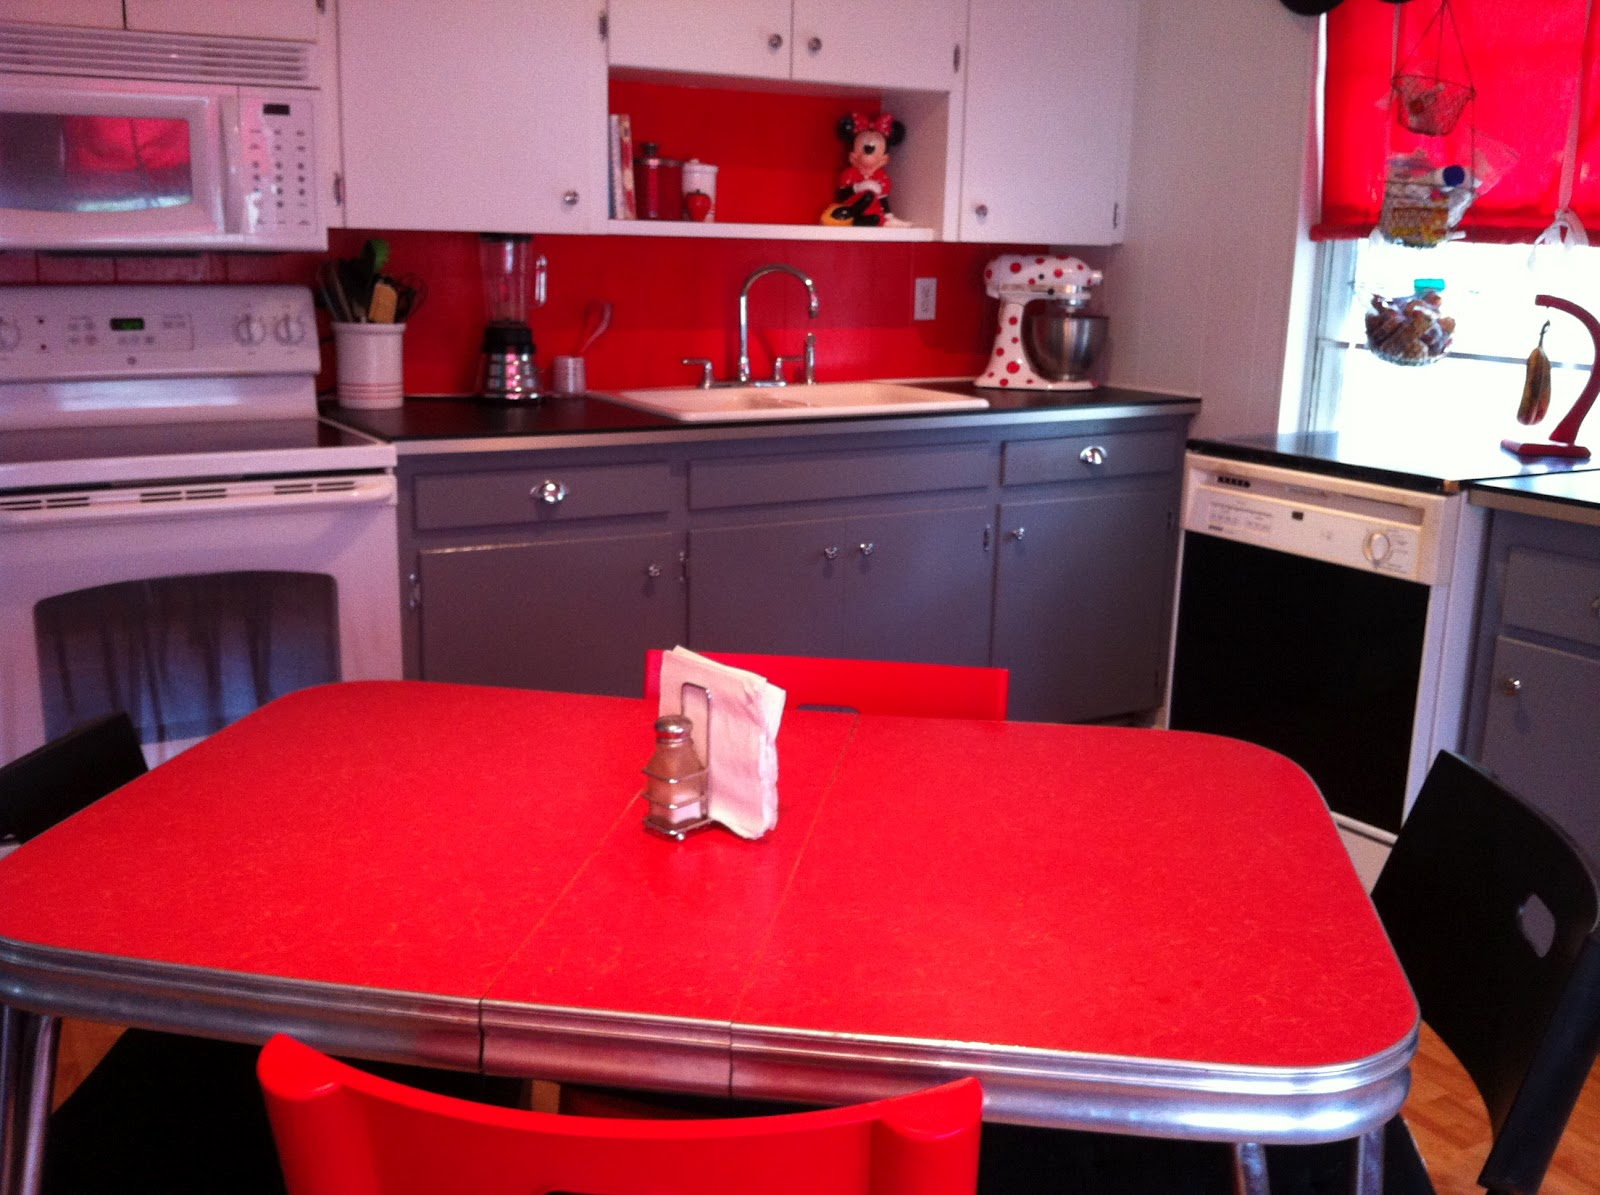 Straw bearie designs cute red 50 39 s modern kitchen for Modern 50s style kitchen